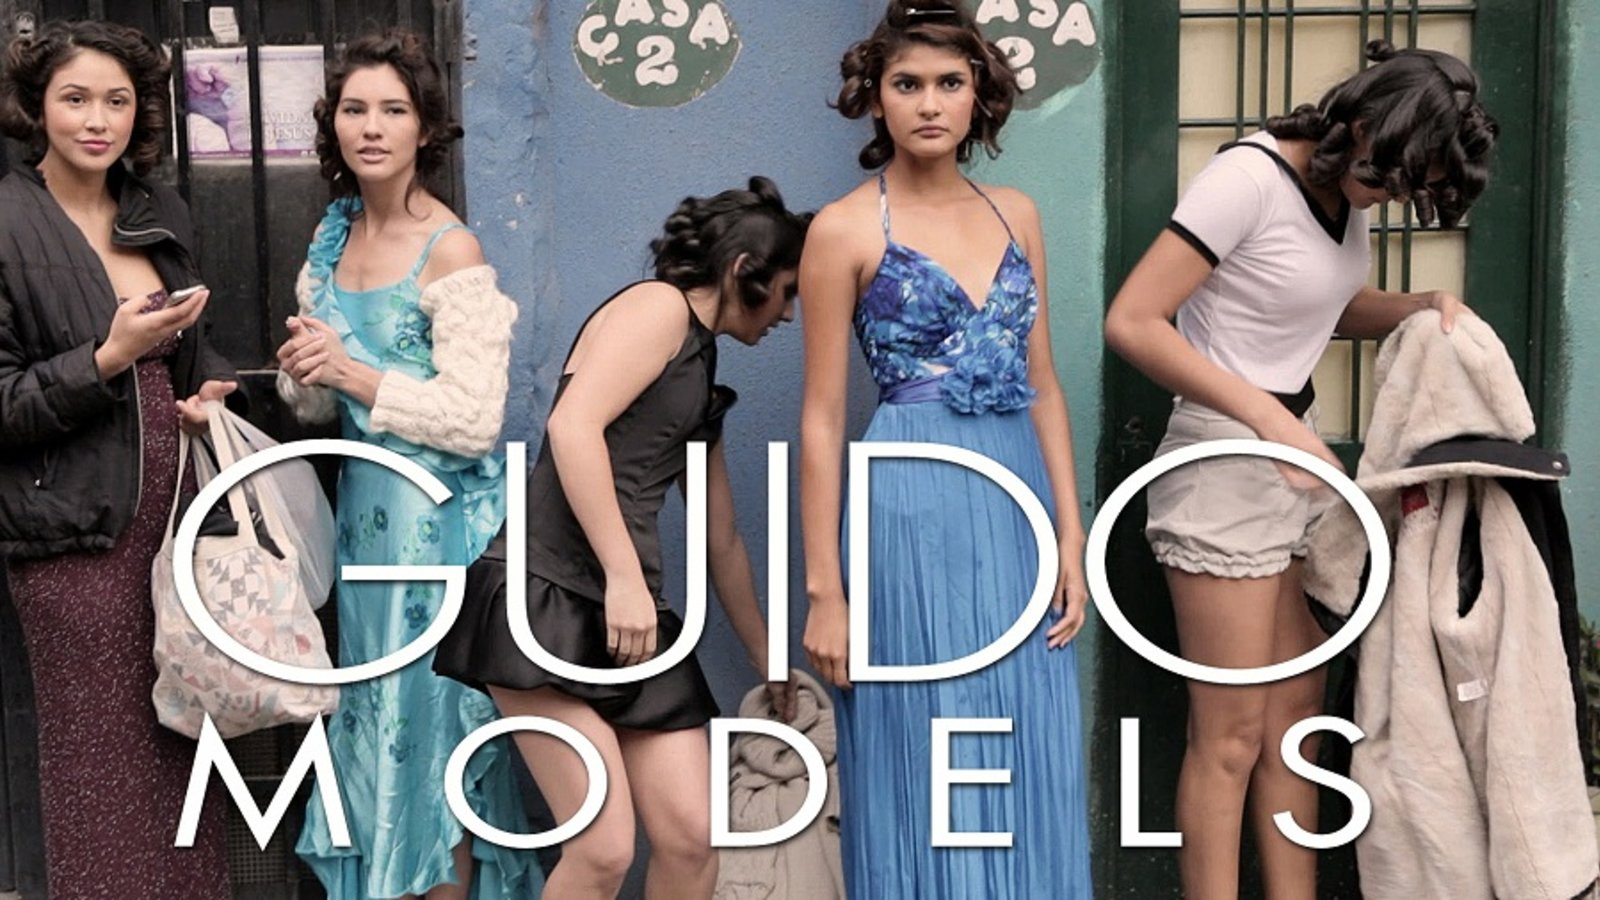 Guido Models - A Modeling Agency in a Buenos Aires Slum